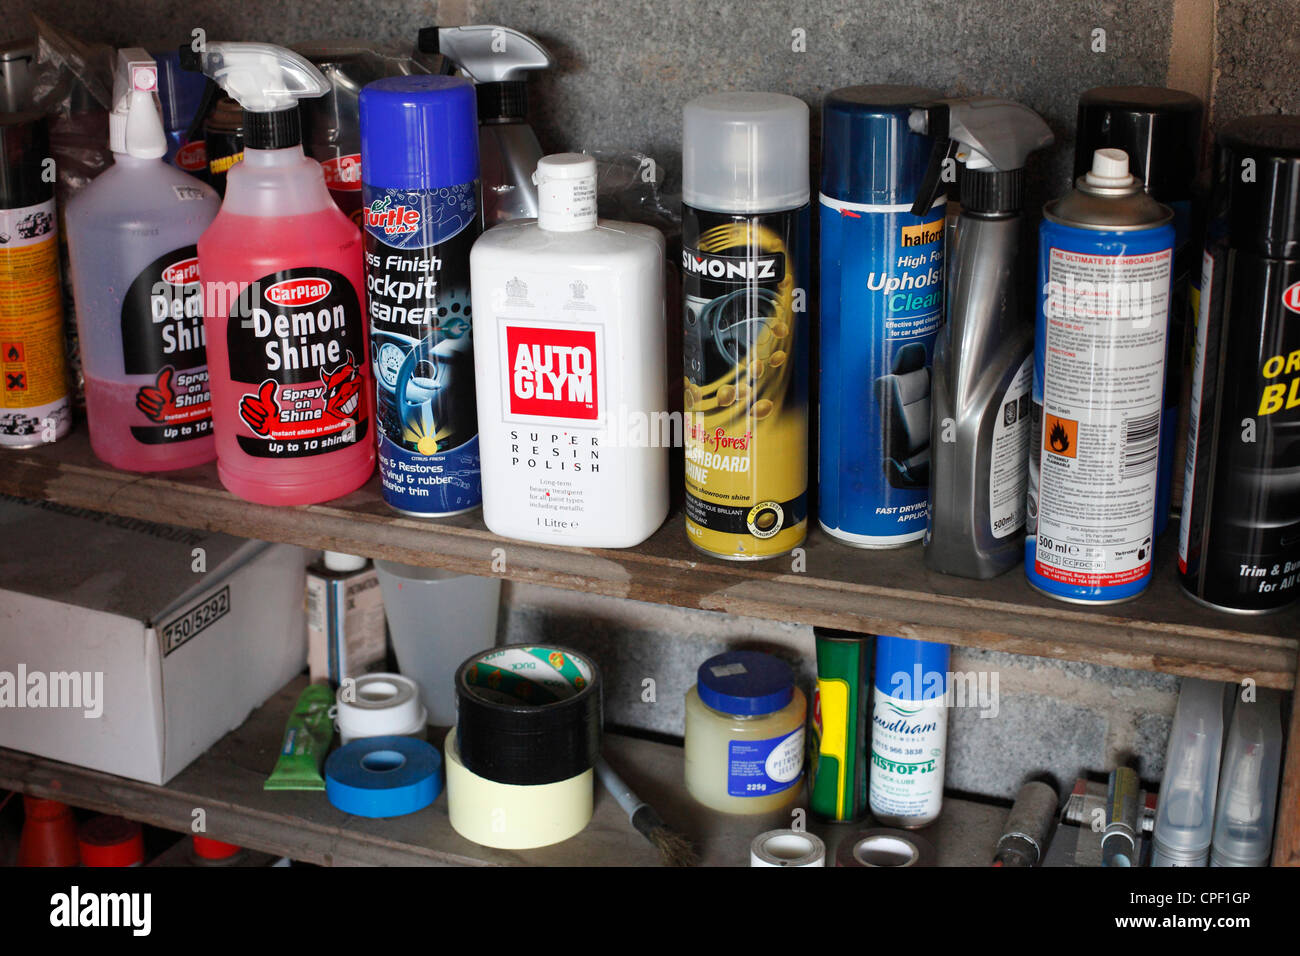 Car Cleaning Supplies >> Car Cleaning Products In A Garage Stock Photo 48273702 Alamy